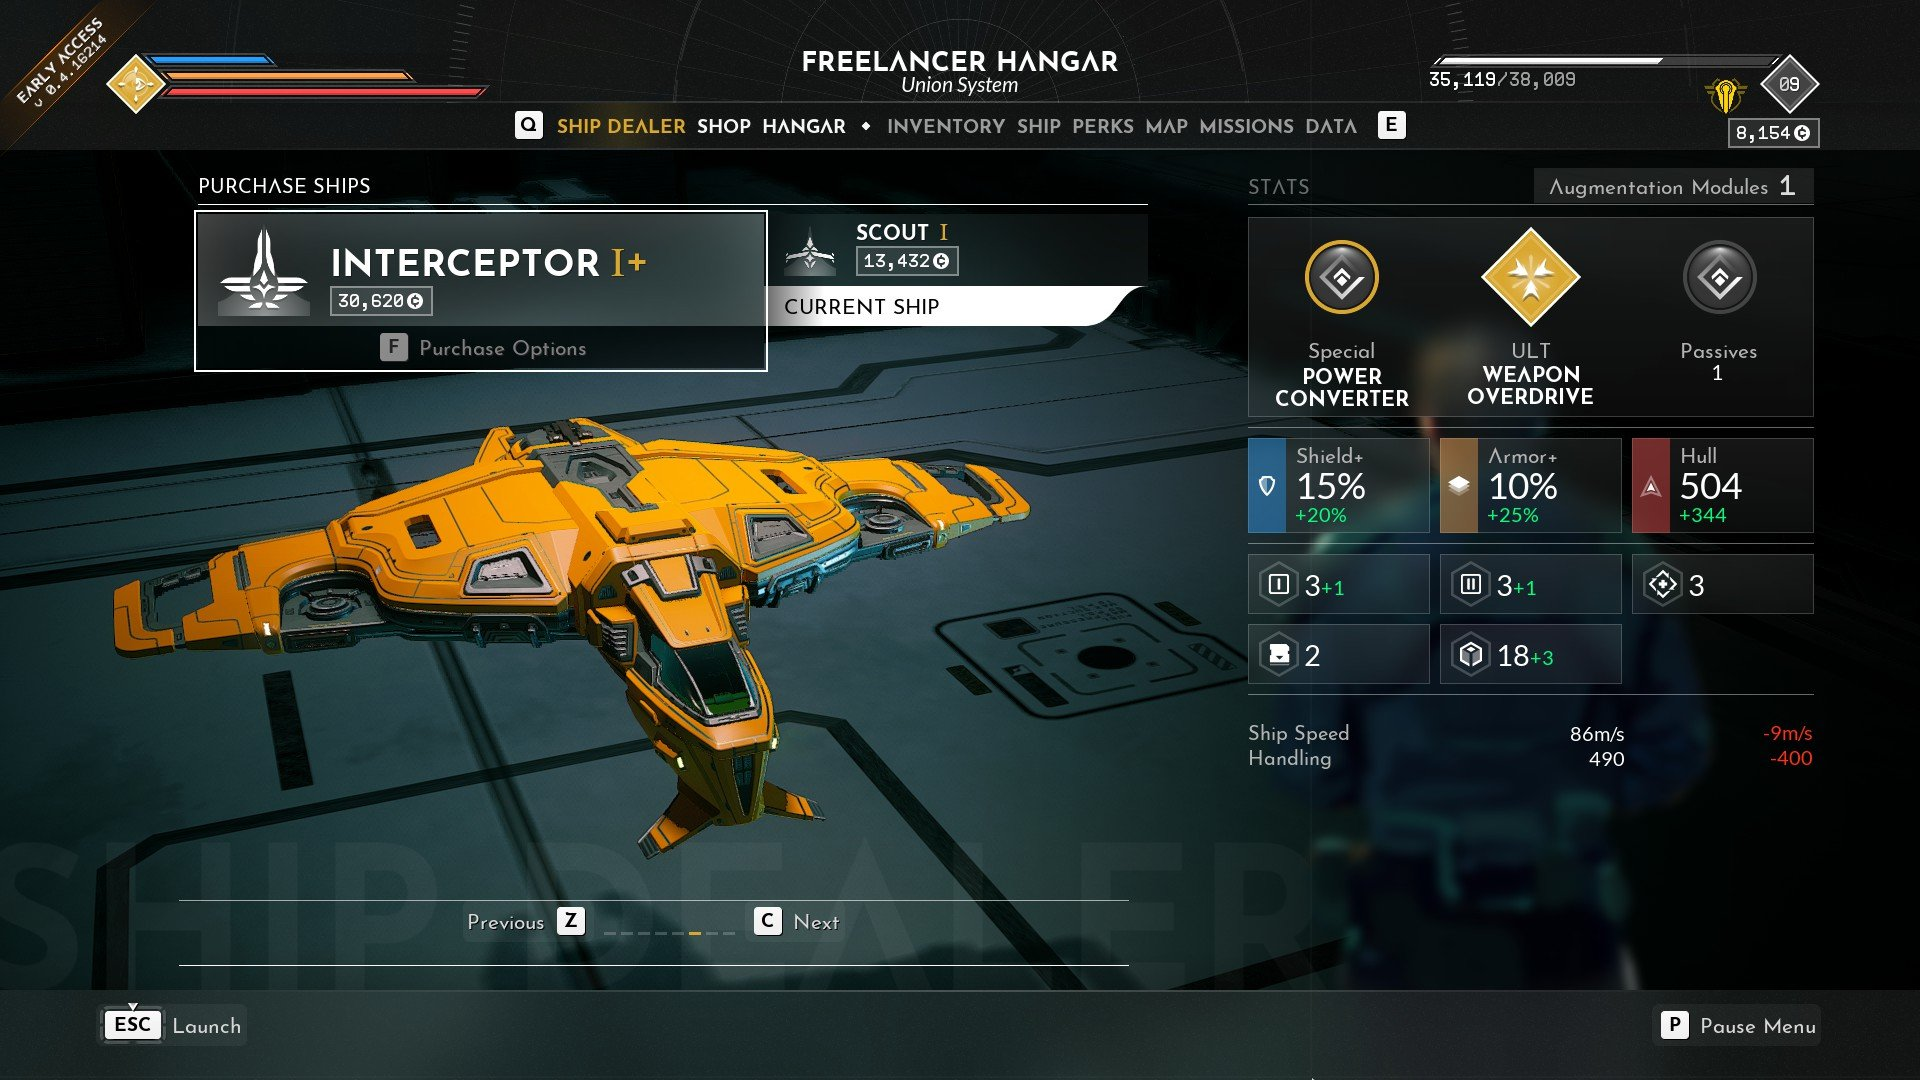 Everspace 2 Interceptor I+ Freelancer